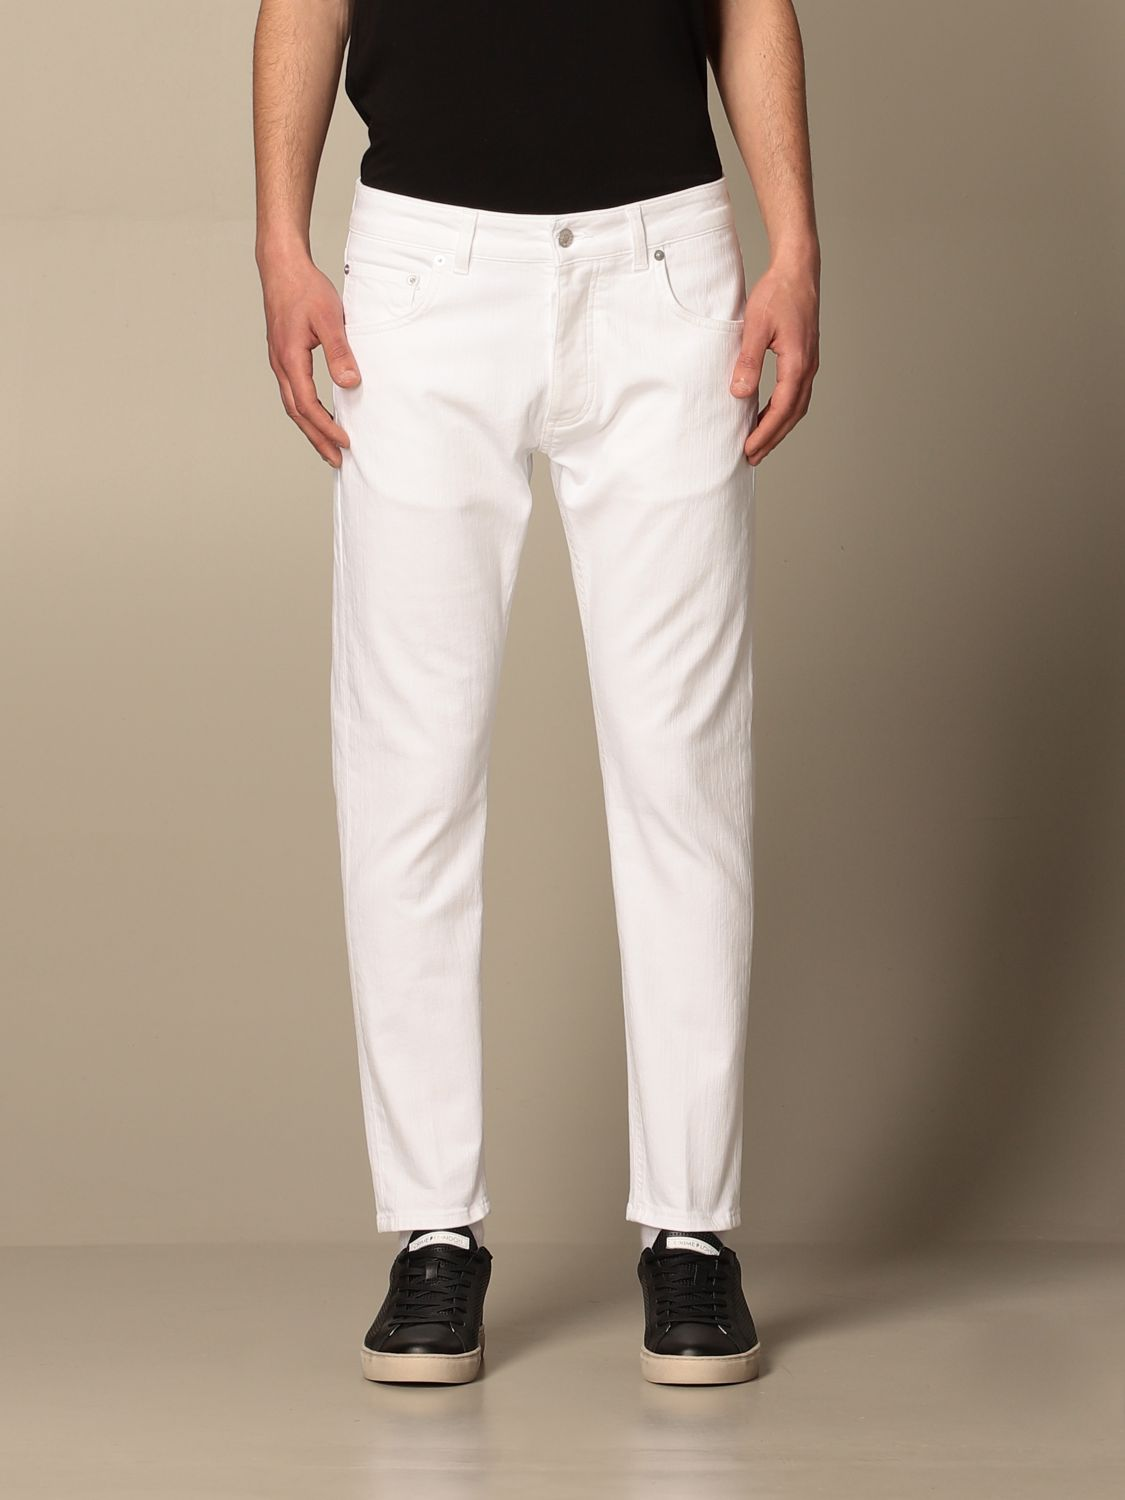 Pantalone Be Able: Pantalone a 5 tasche Be Able in cotone stretch bianco 1